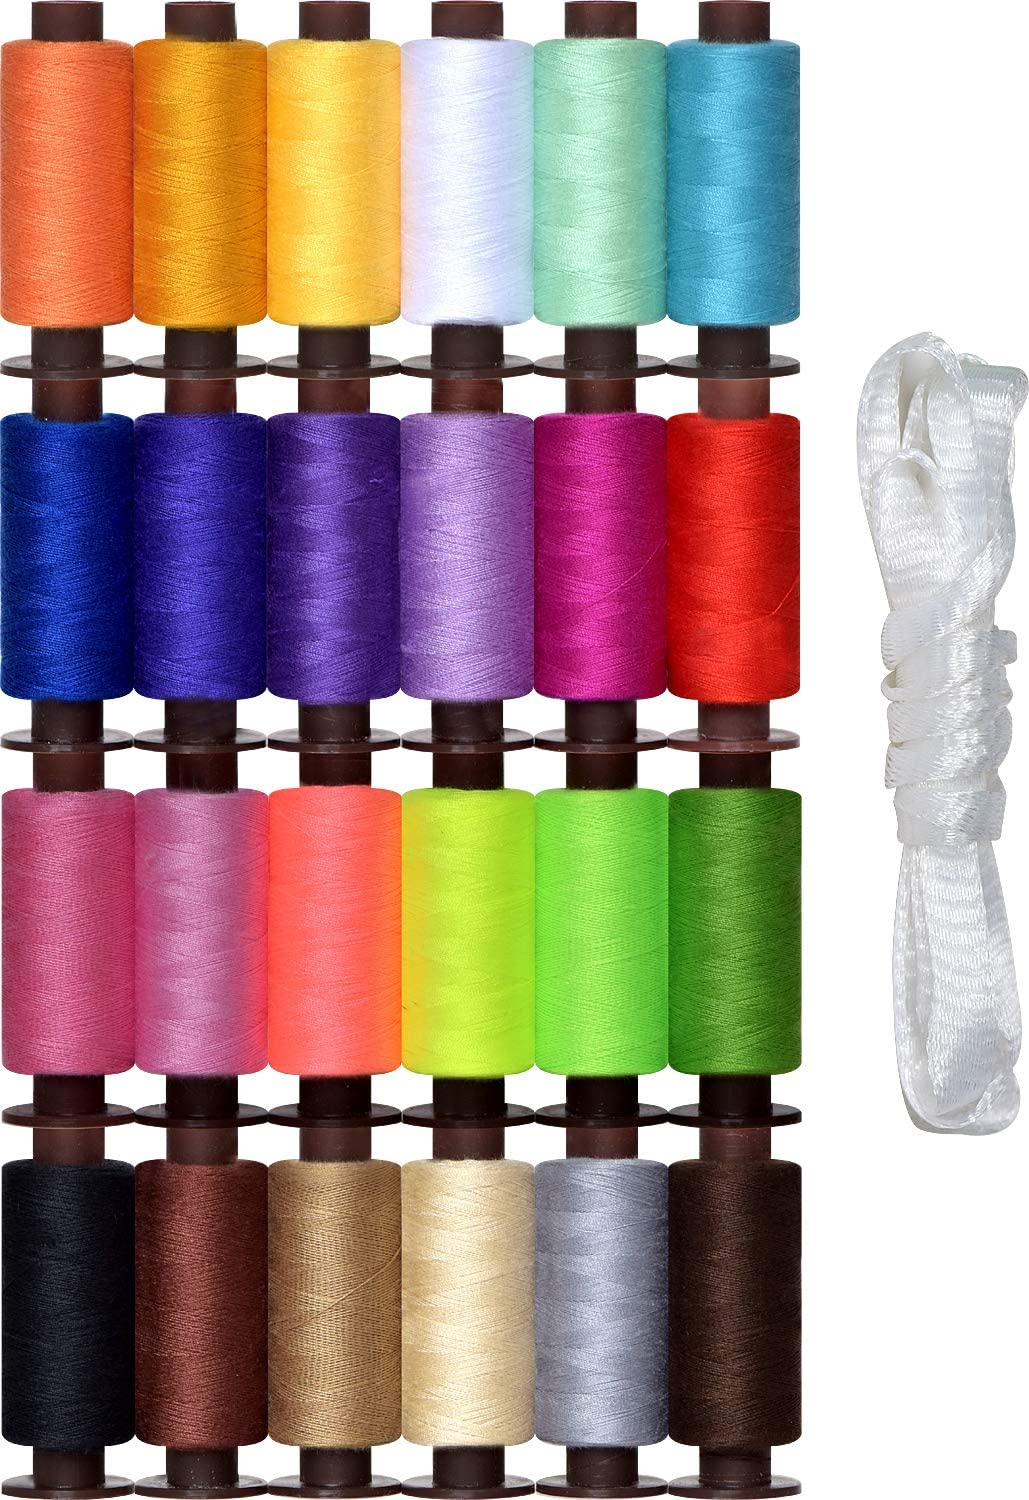 Sewing sold out Thread -24 Colors- kit -9600 Yards famous